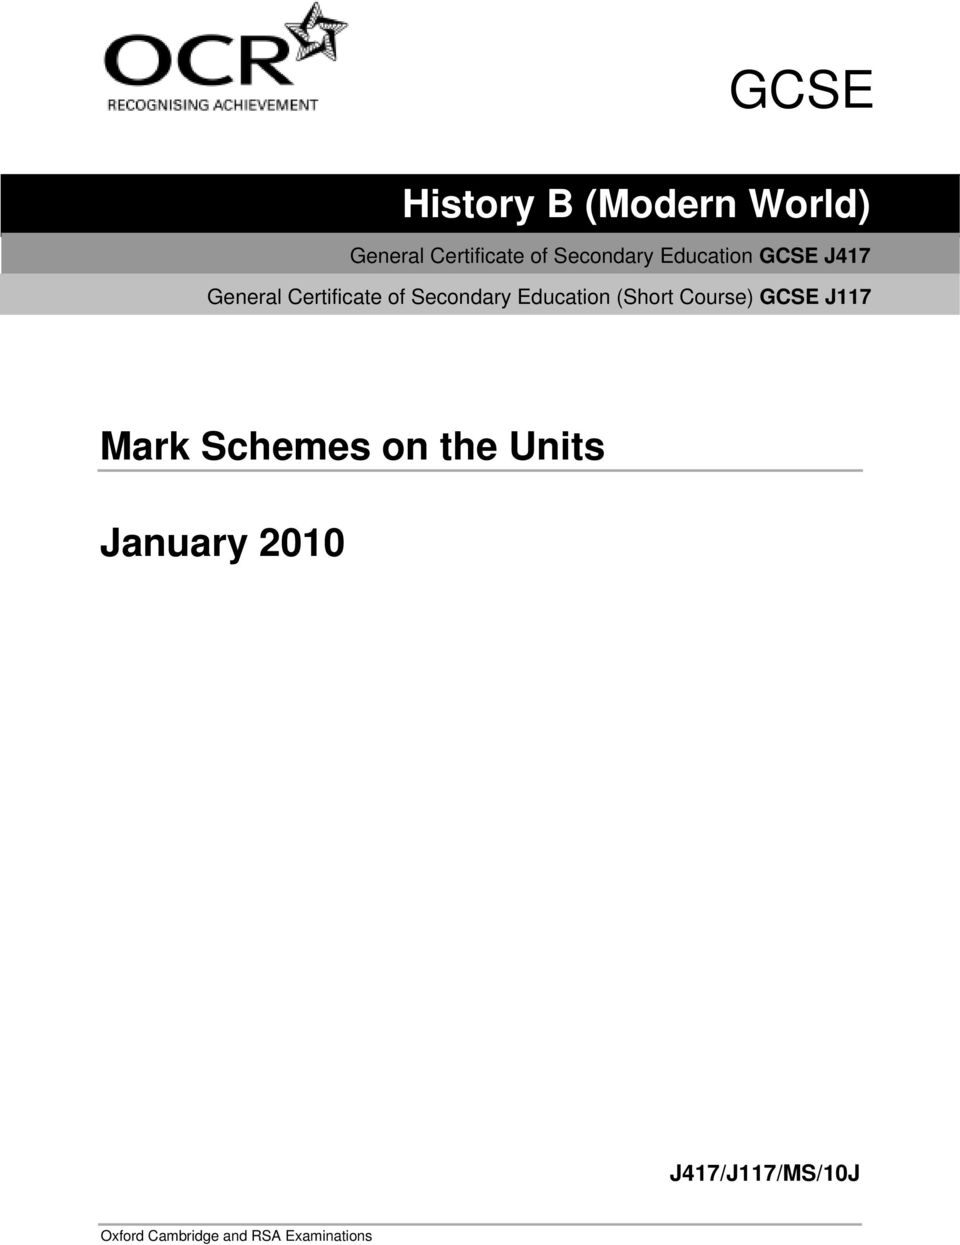 aqa history coursework mark schemes Ocr gcse history b: for controlled assessment the use of compulsory coursework consultancy will now be required (143) past papers, mark schemes and reports.